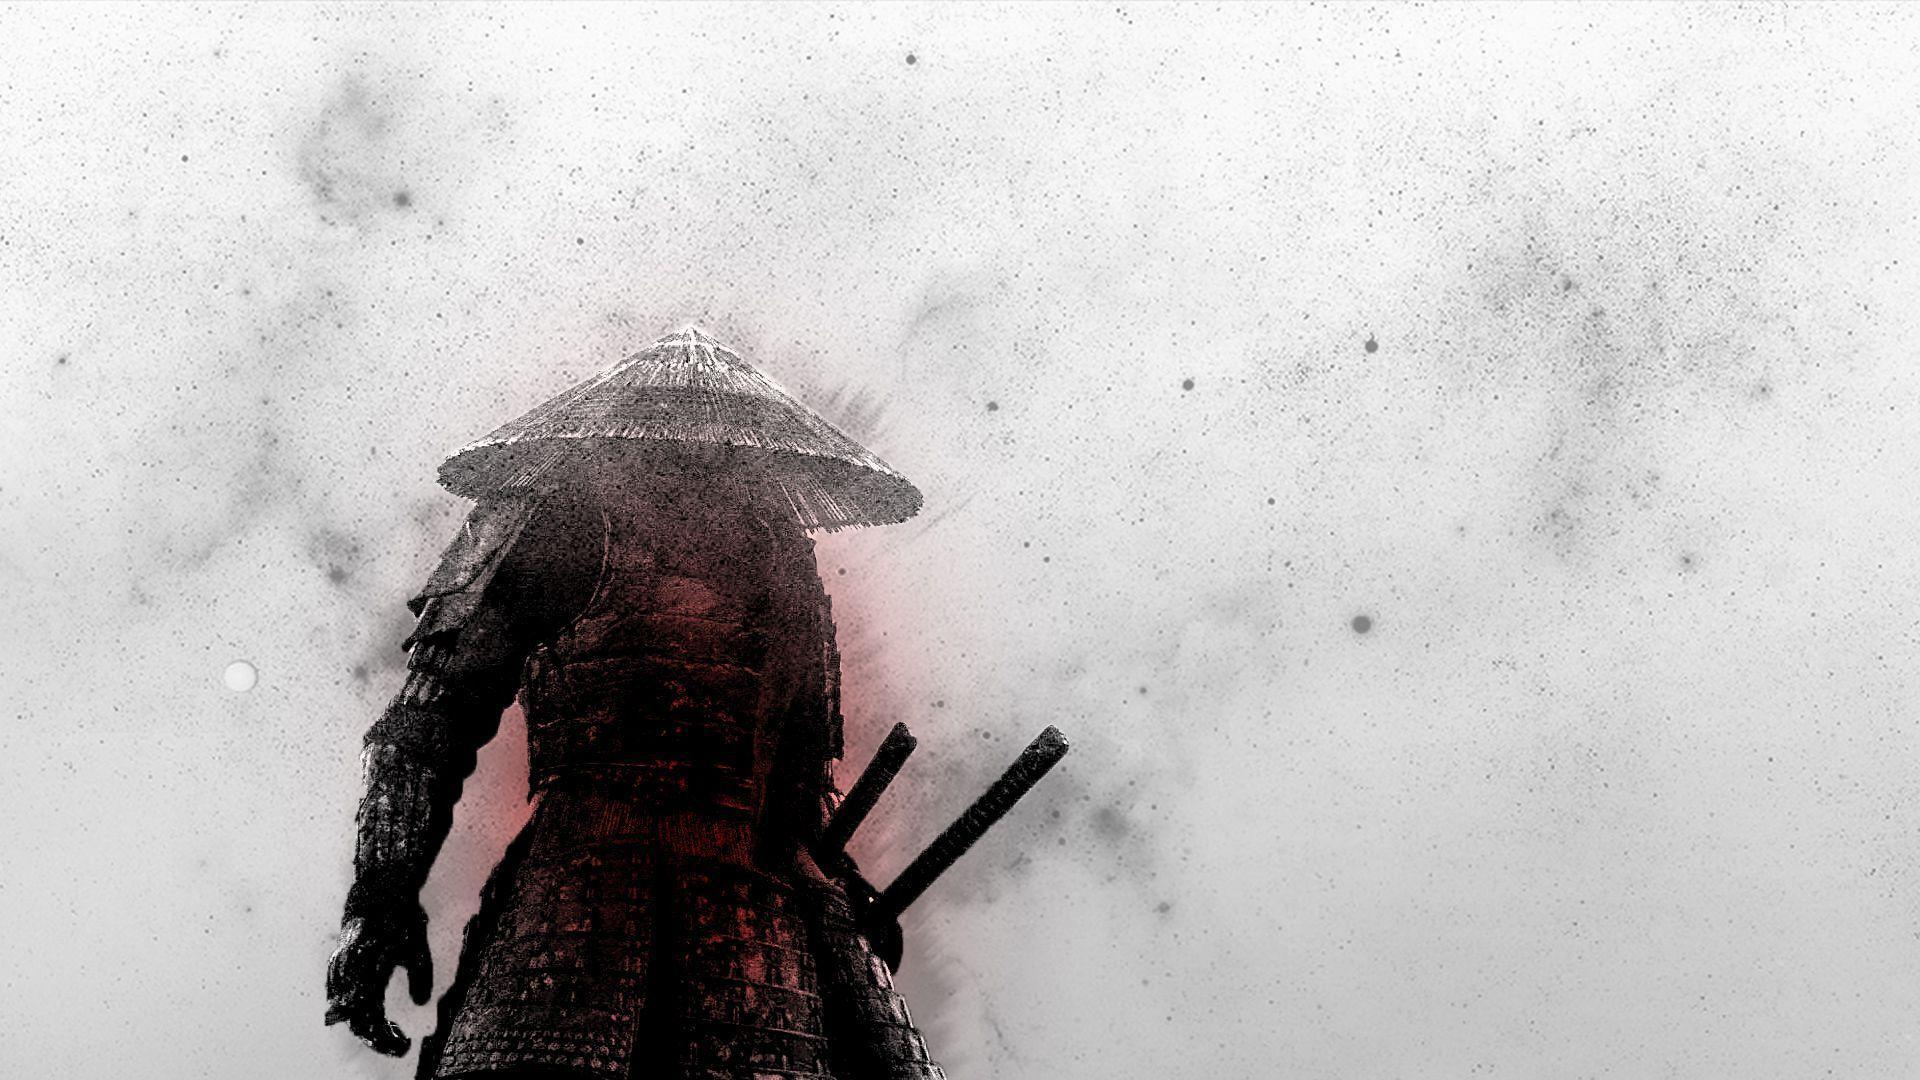 samurai katana wallpaper hd - photo #34